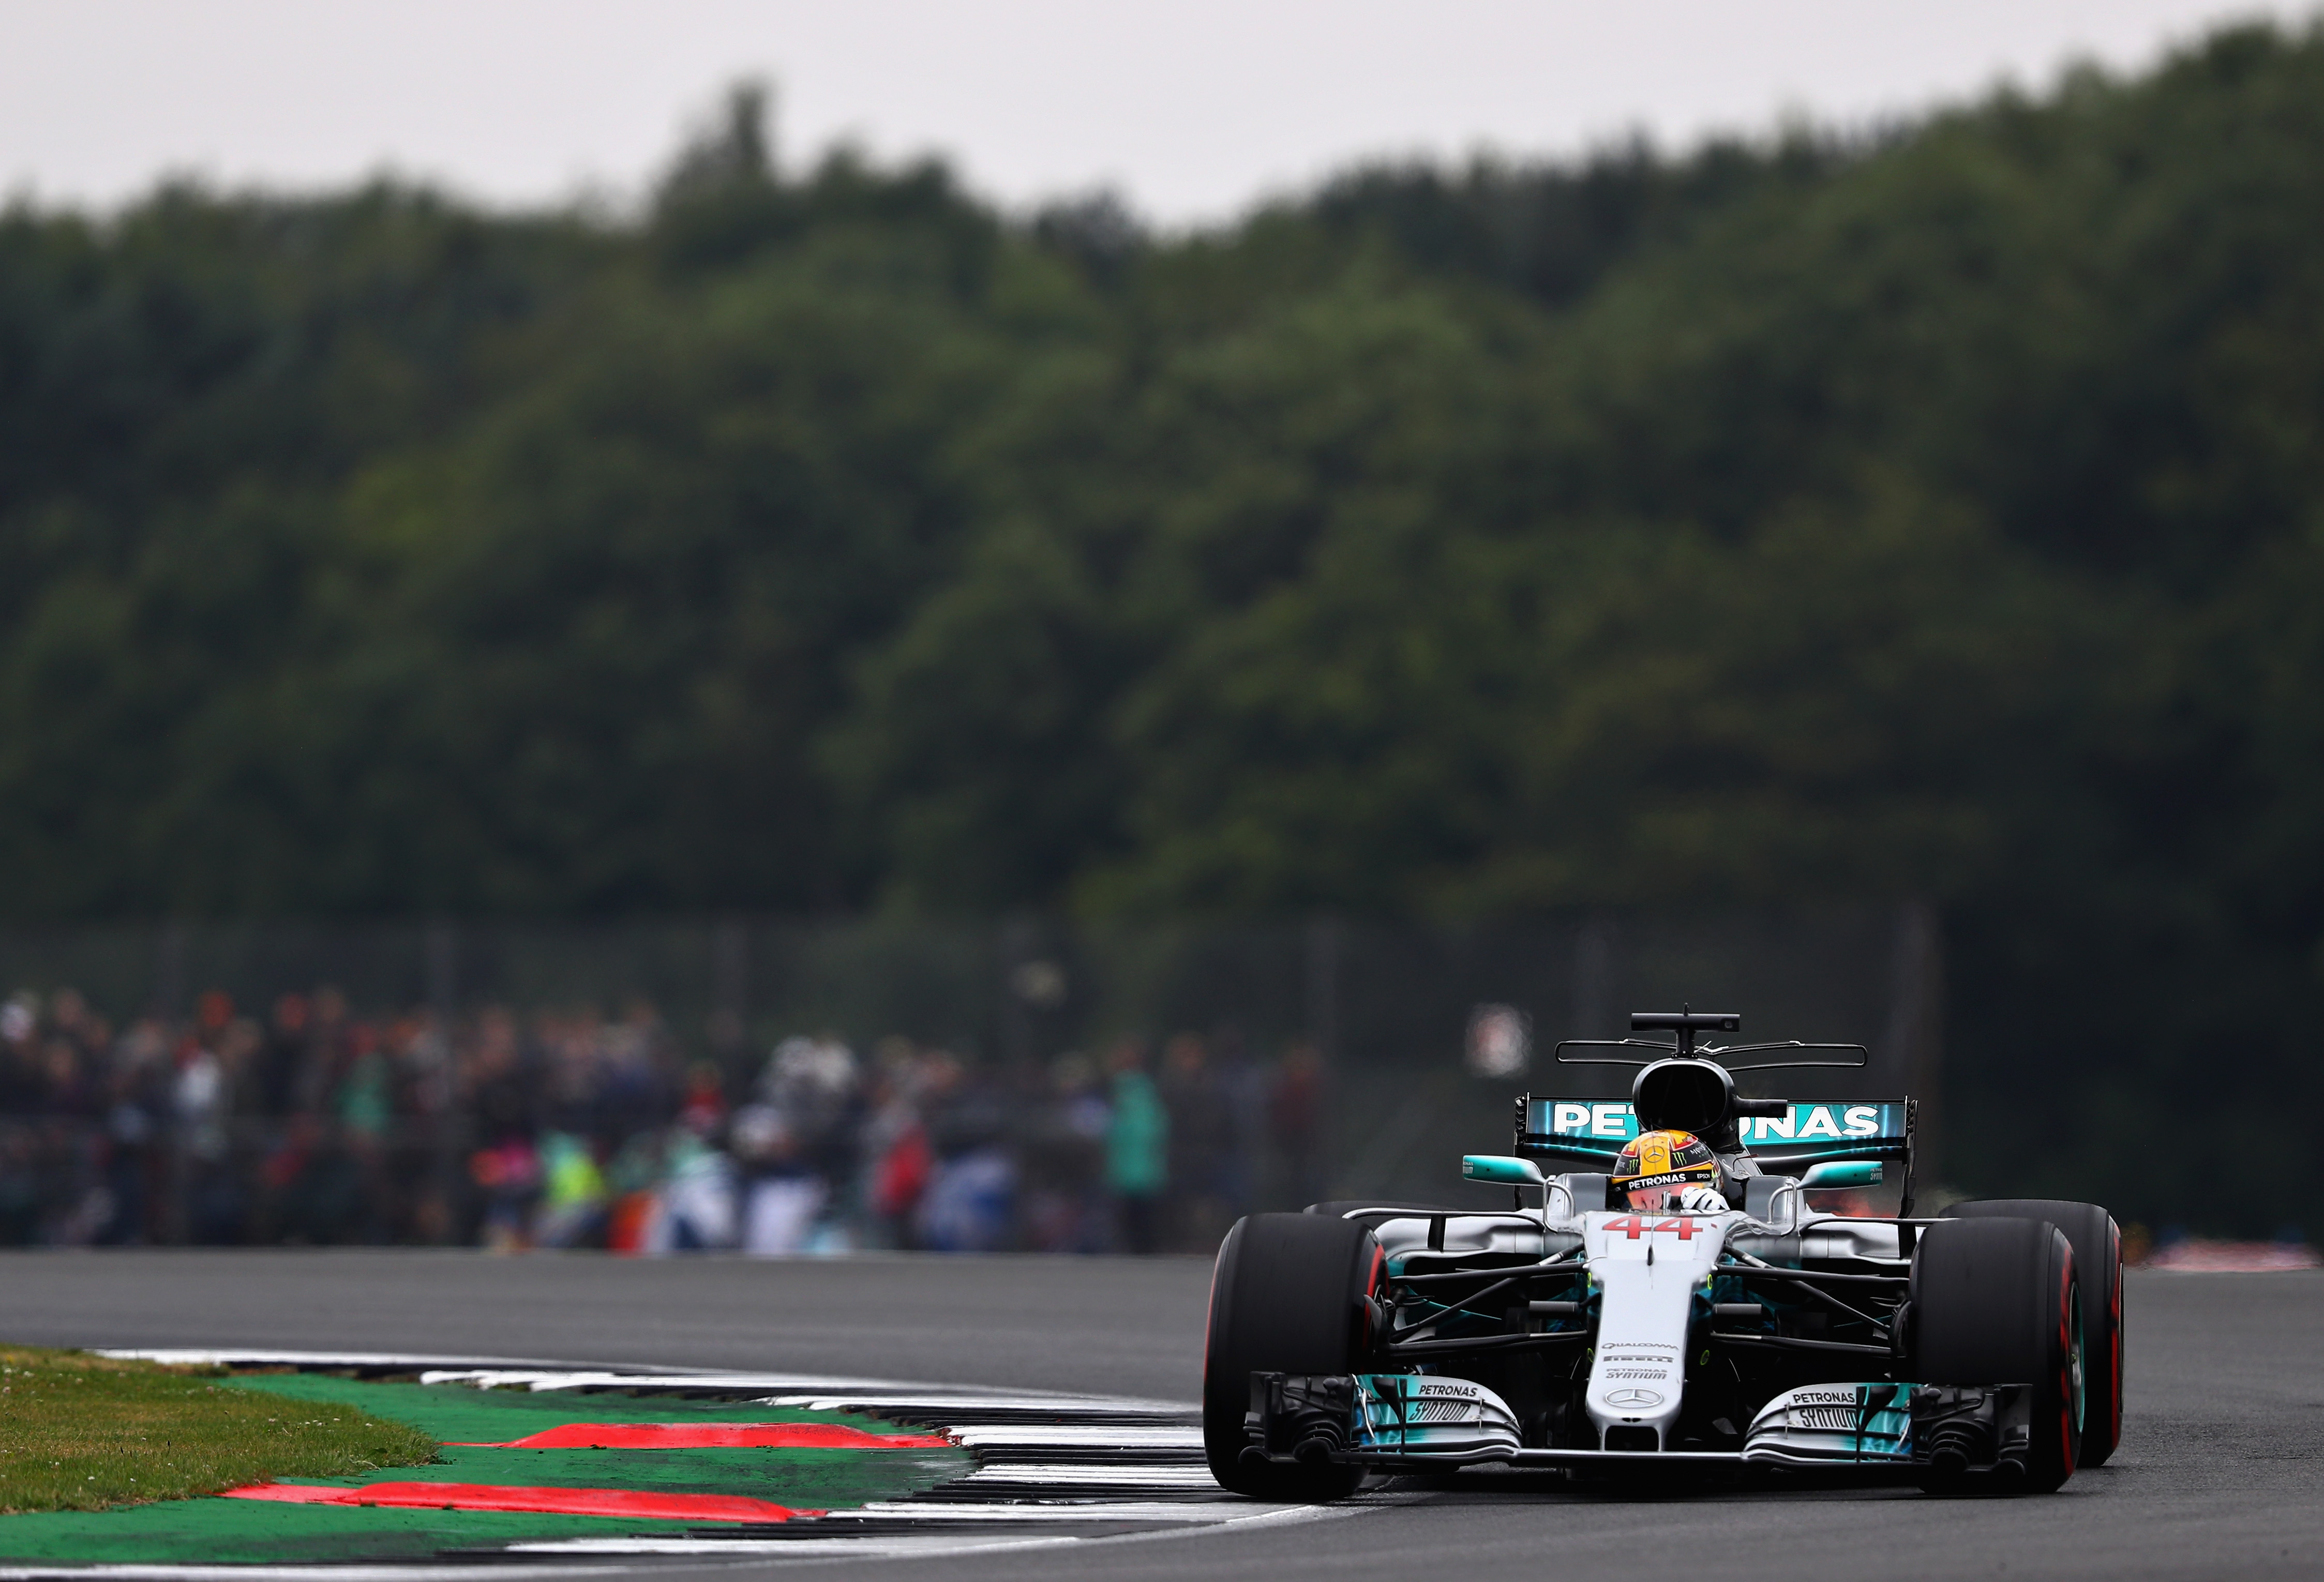 Formula 1 2017: Starting grid, lineup for British Grand Prix at Silverstone